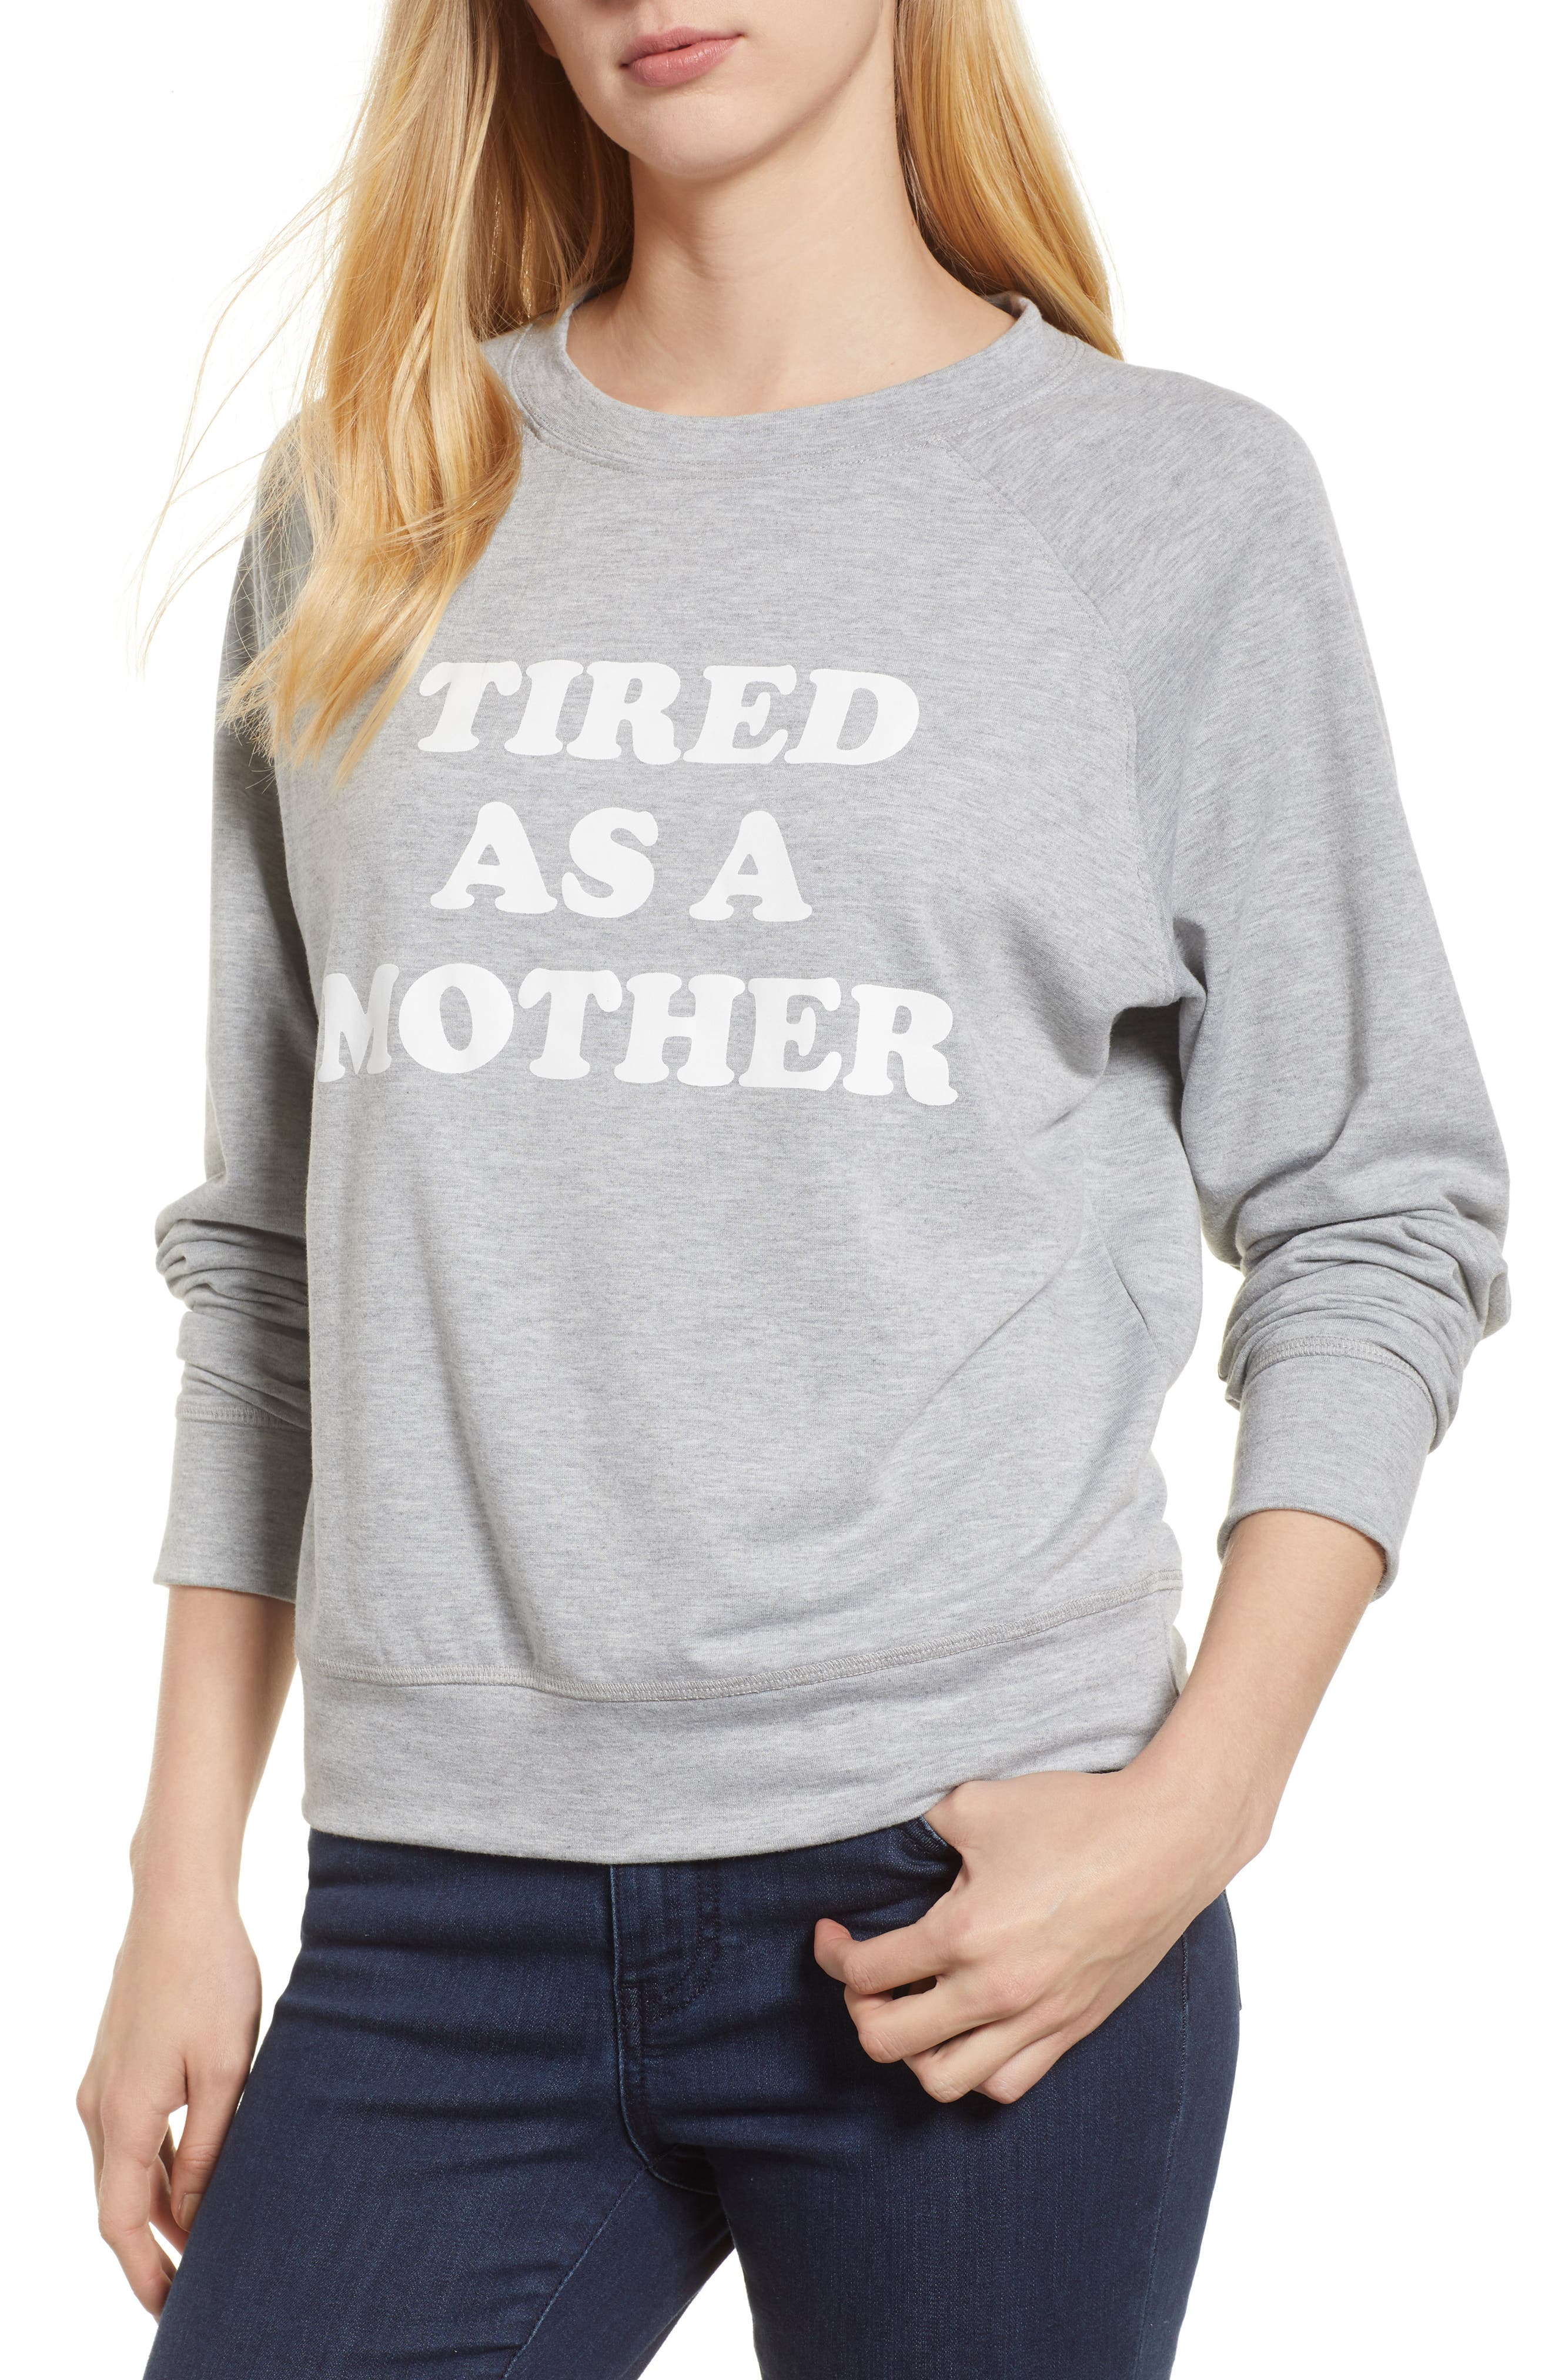 Off-Duty Tired as a Mother Sweatshirt,                             Main thumbnail 1, color,                             030